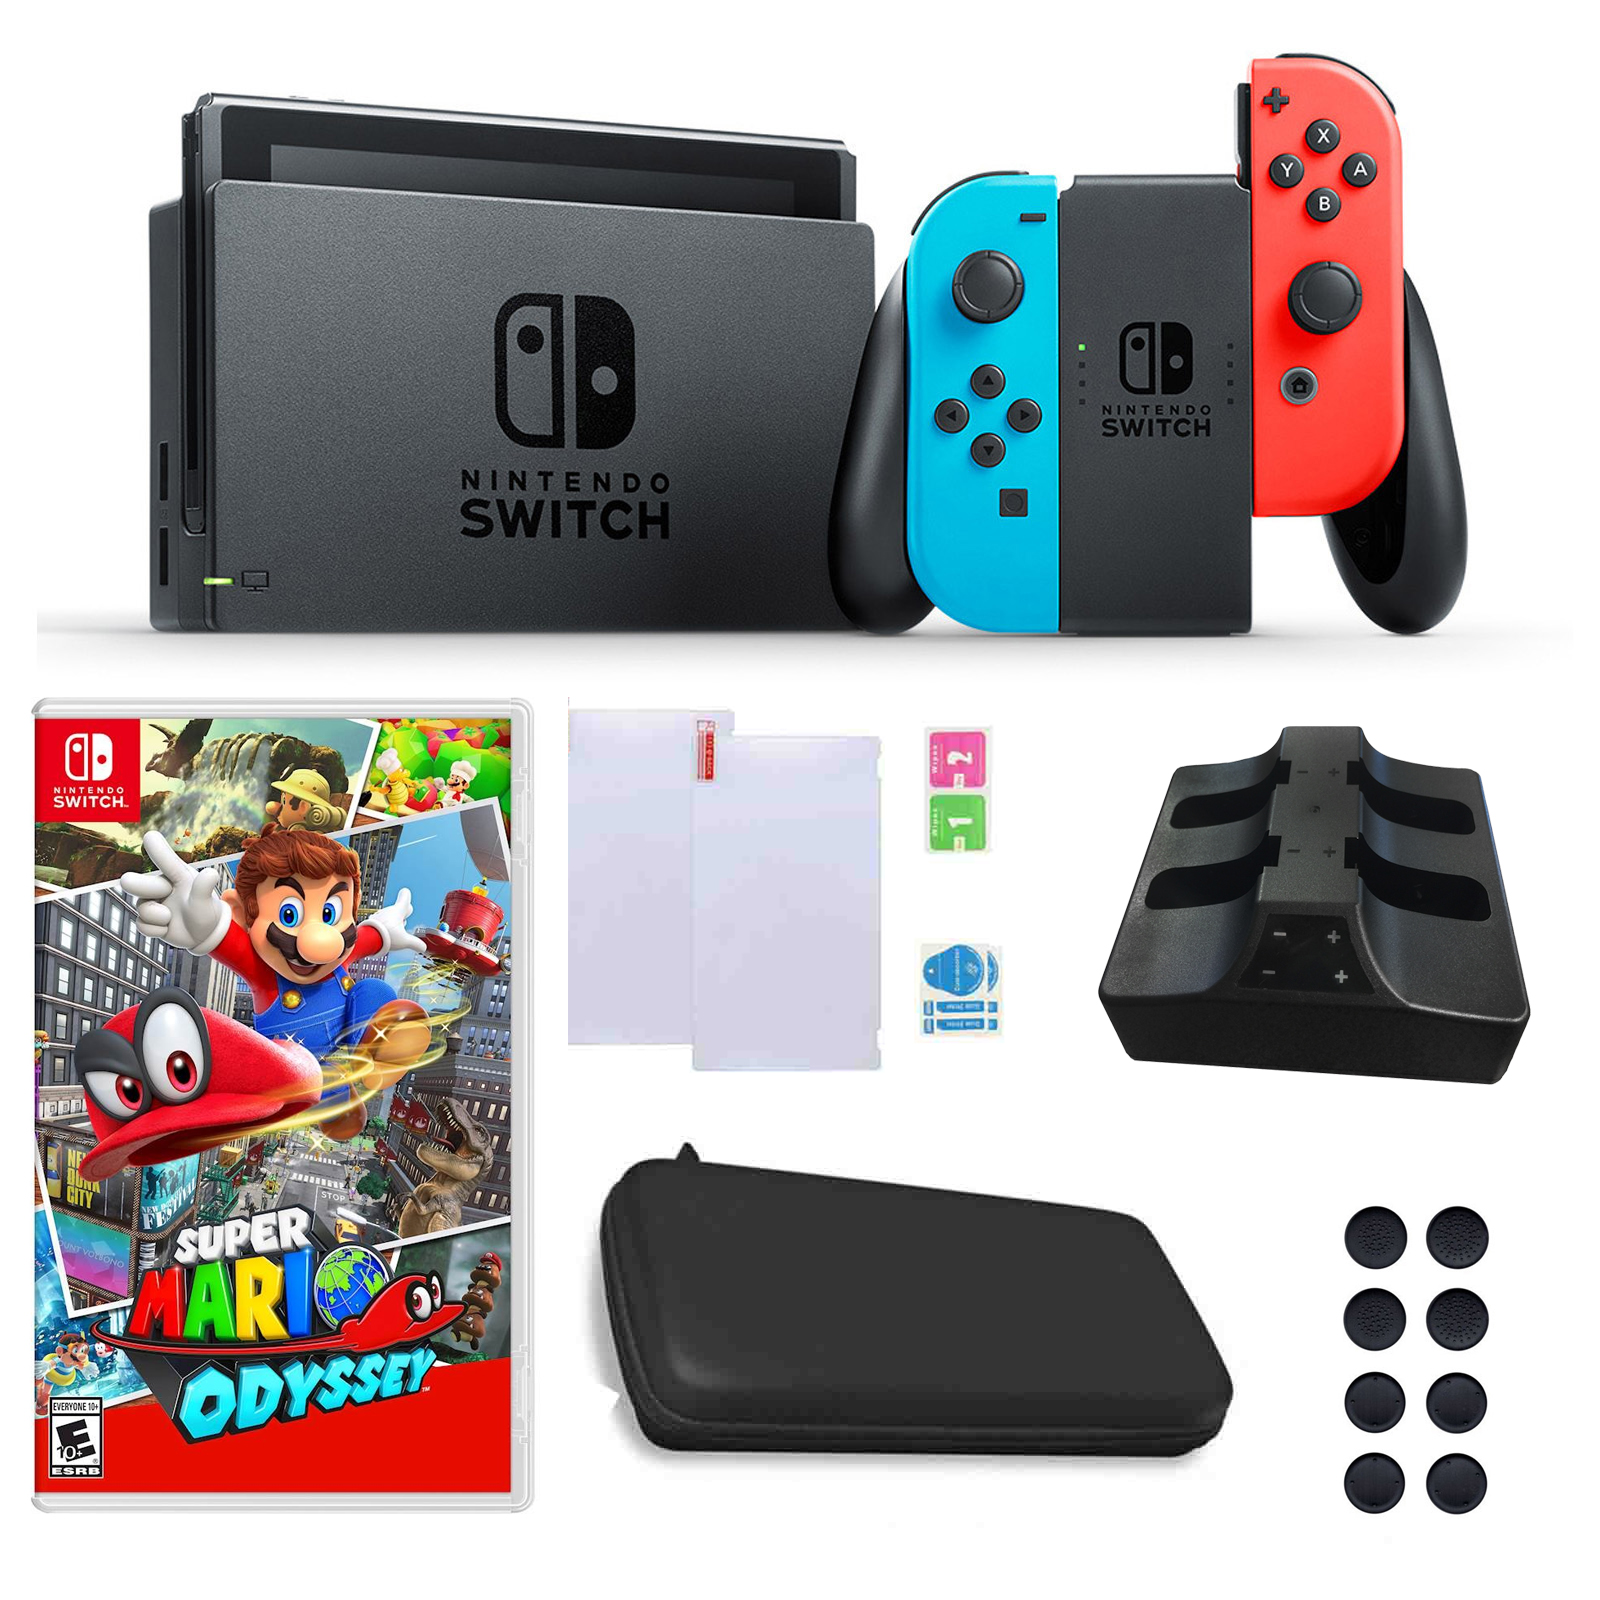 Nintendo Switch In Neon With Mario Odyssey Game And